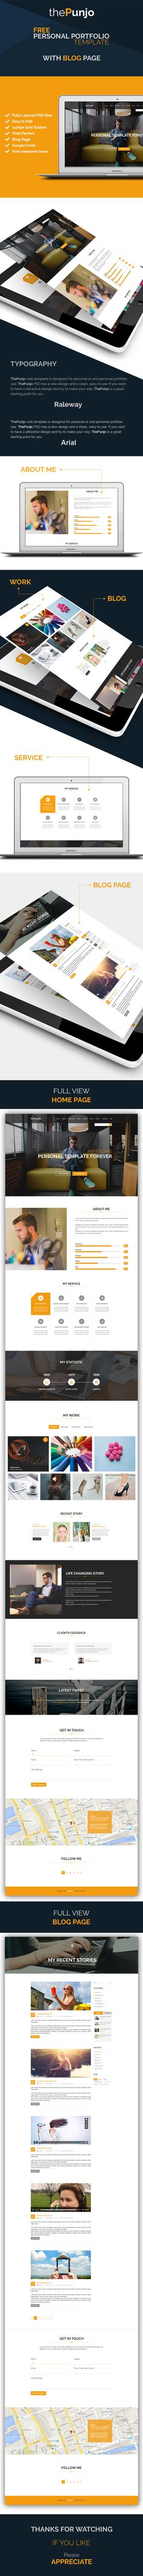 ThePunjo Personal Portfolio PSD Template (Free) on Behance